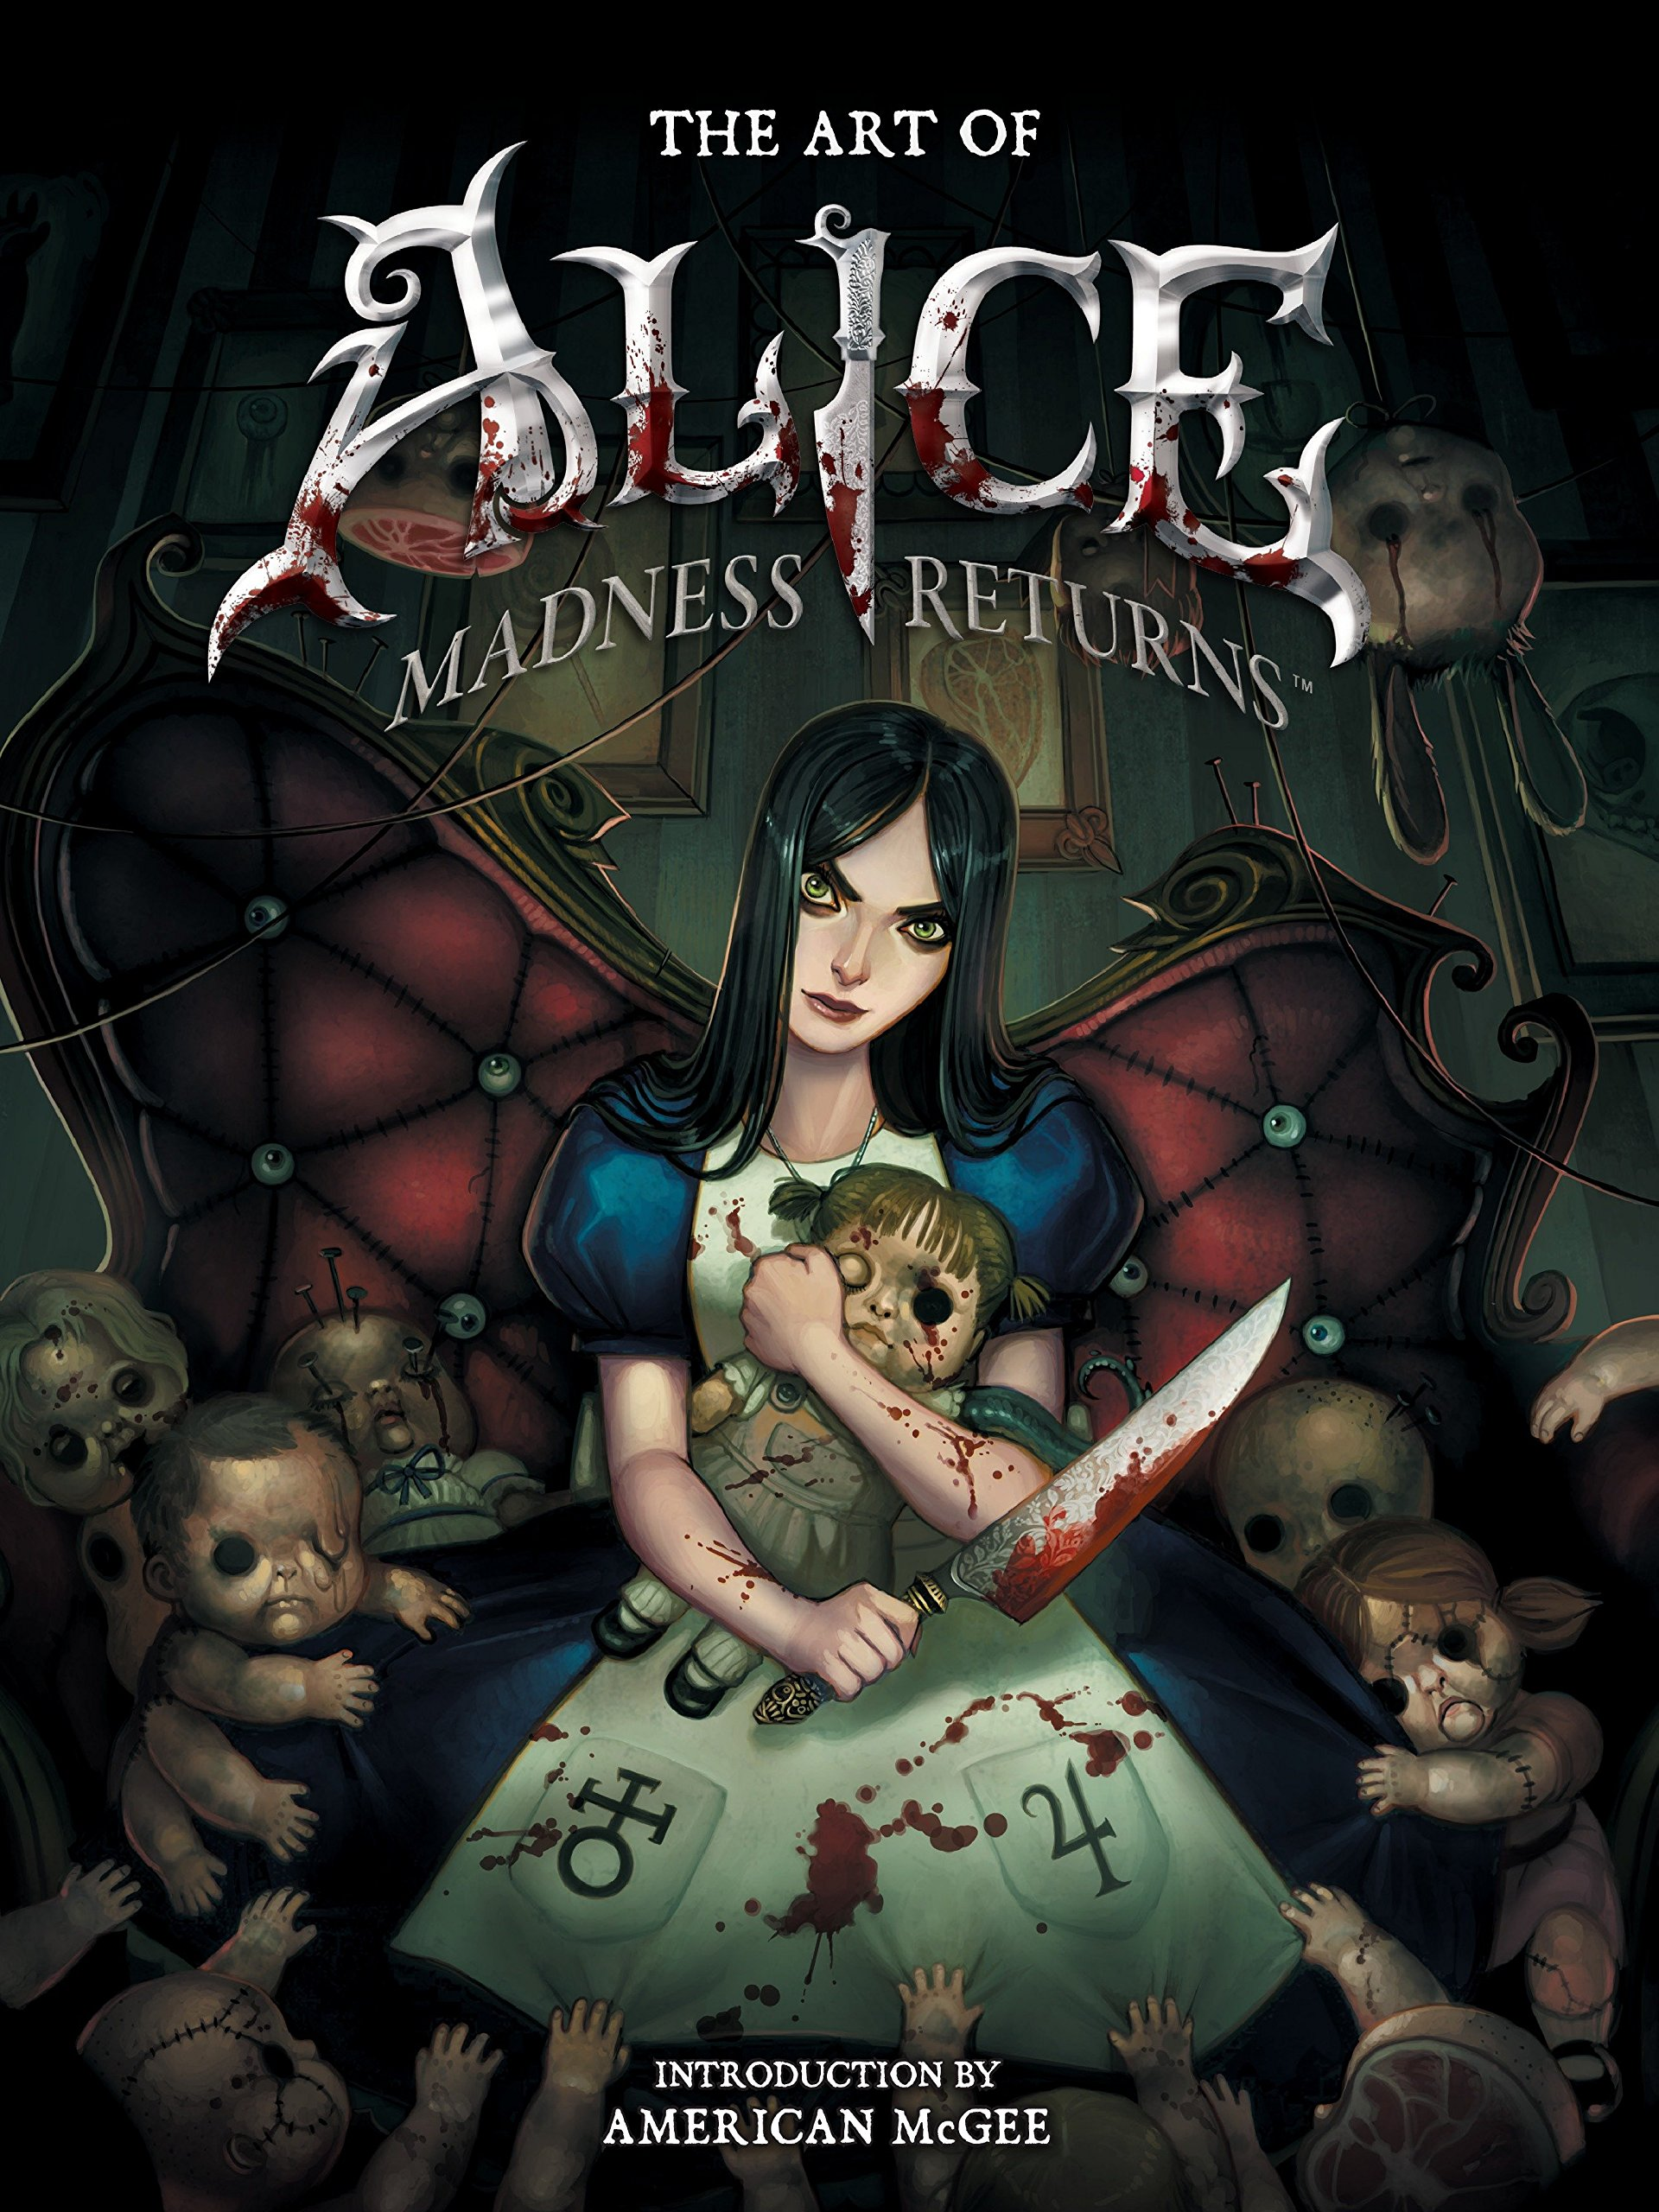 The Art of Alice: Madness Returns by Dark Horse Comics